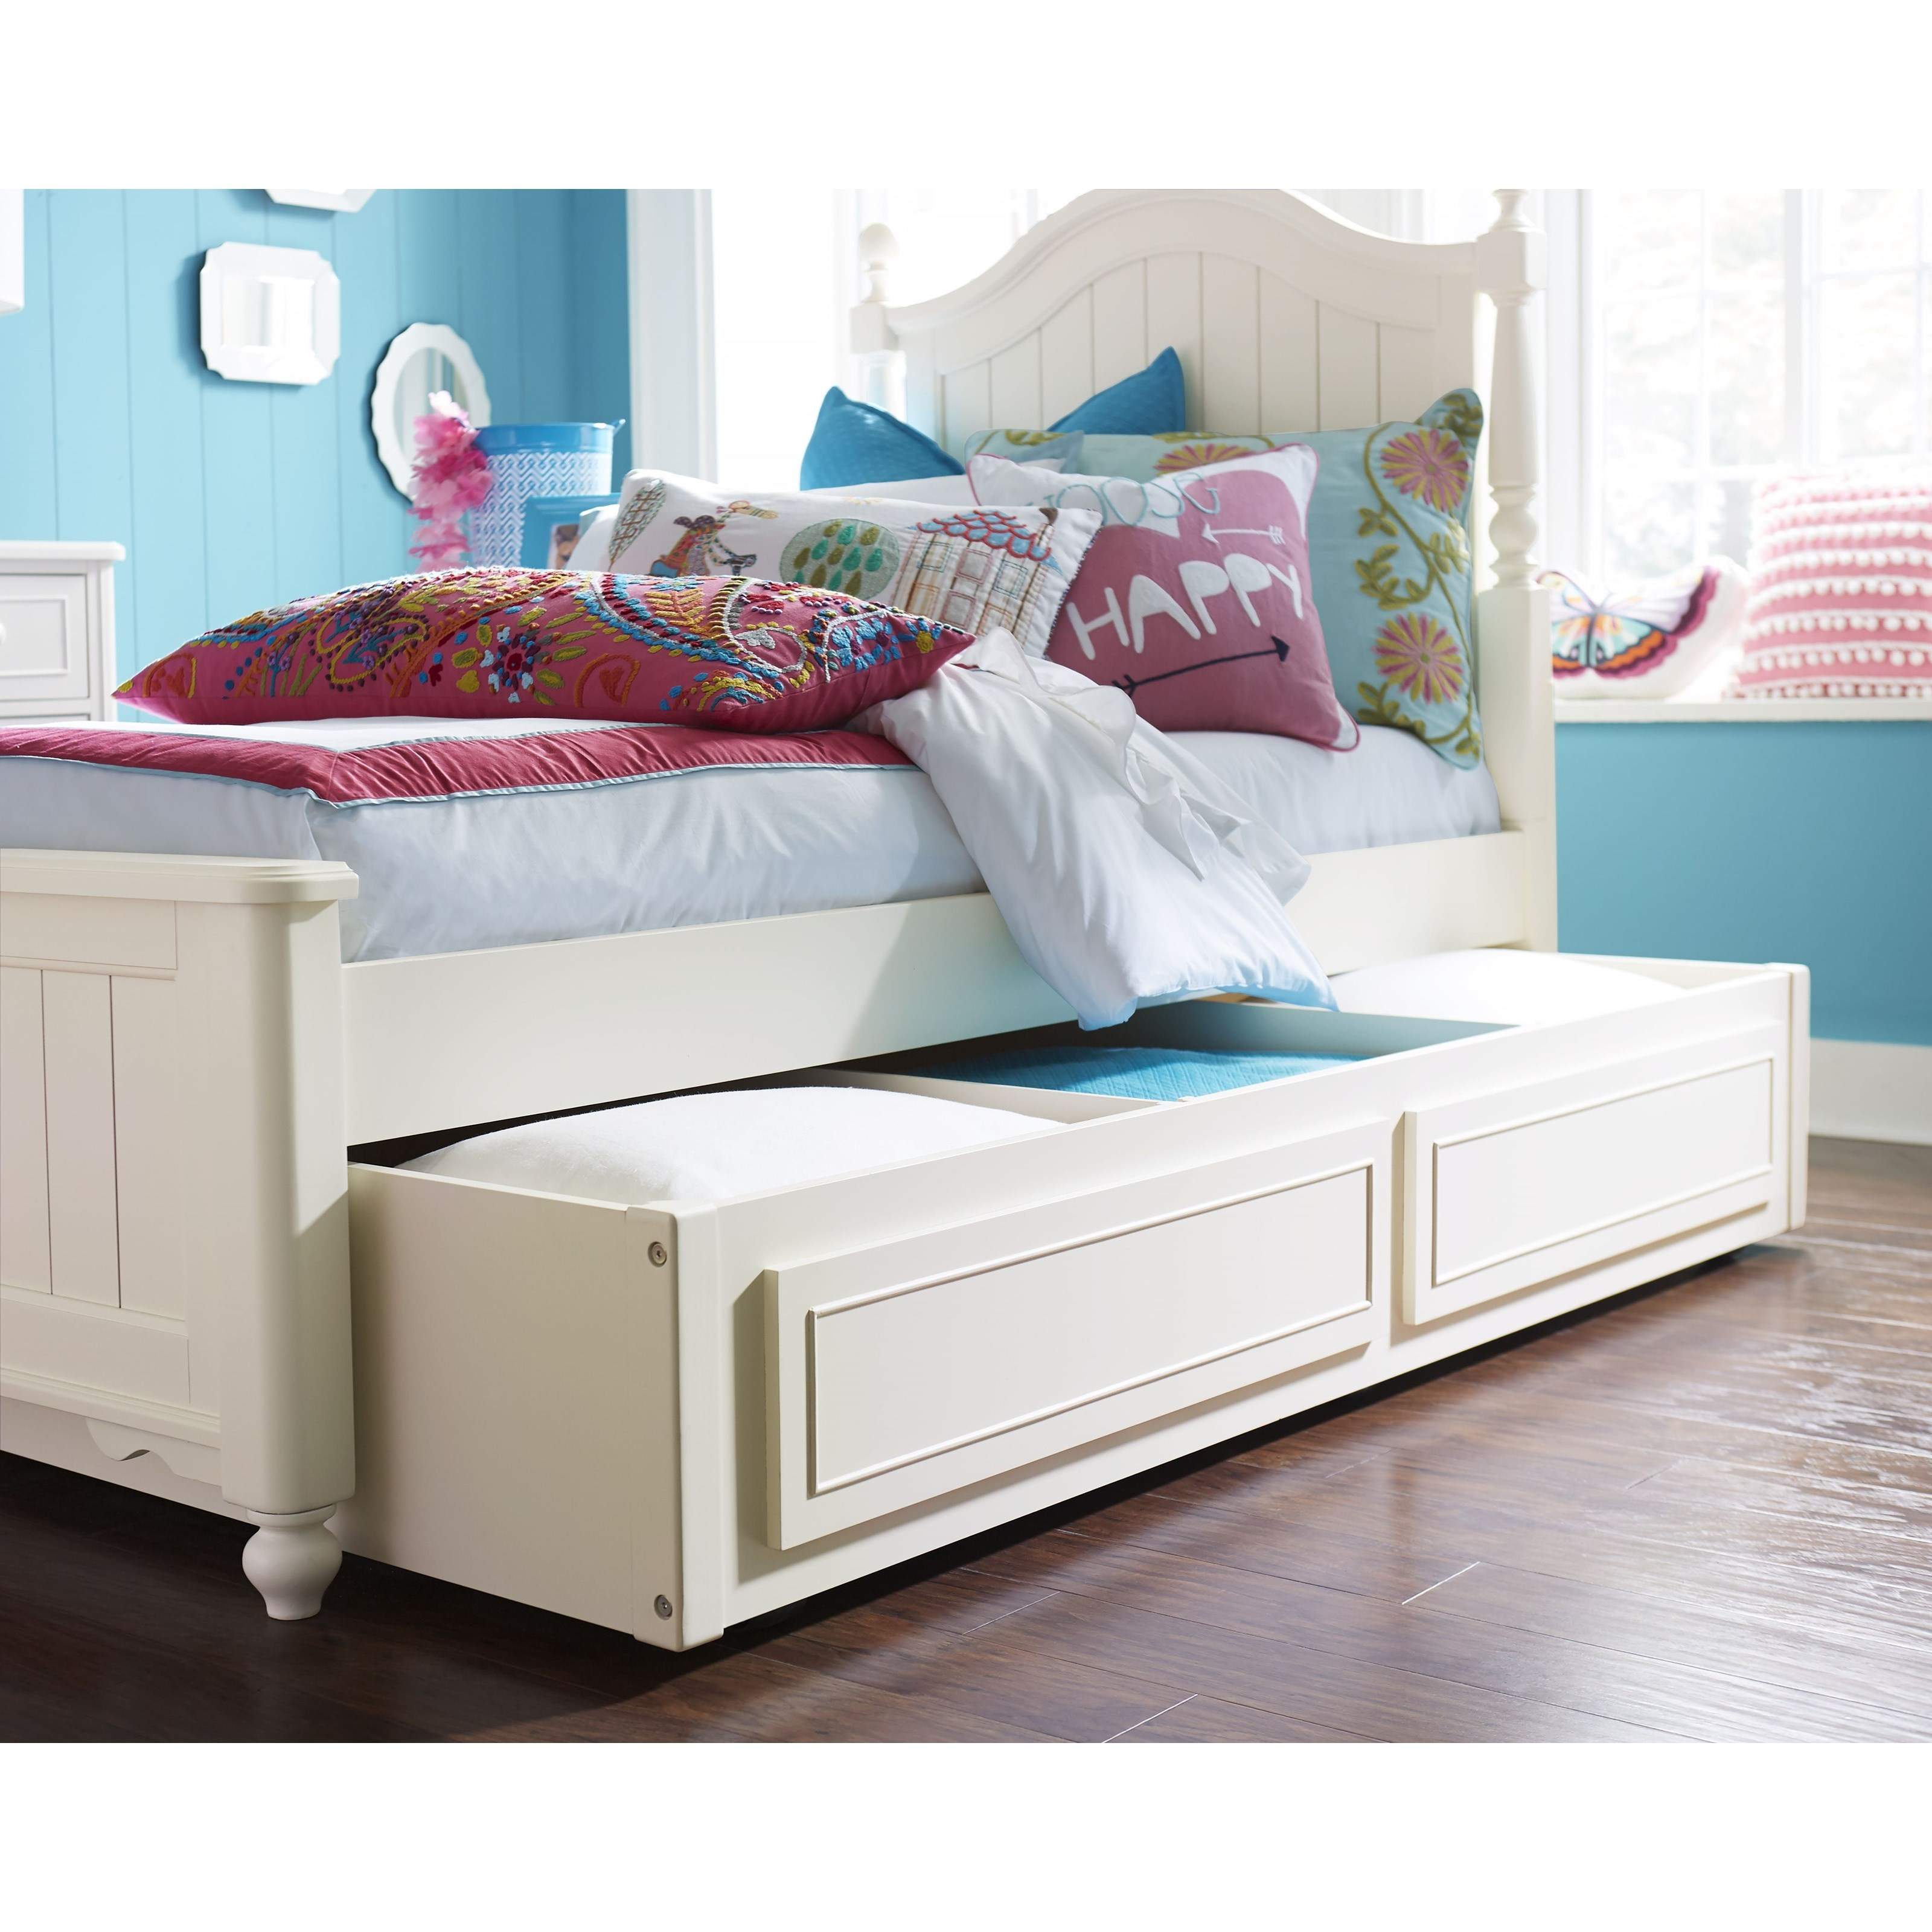 childrens trundle beds legacy classic summerset bed with trundle 11120